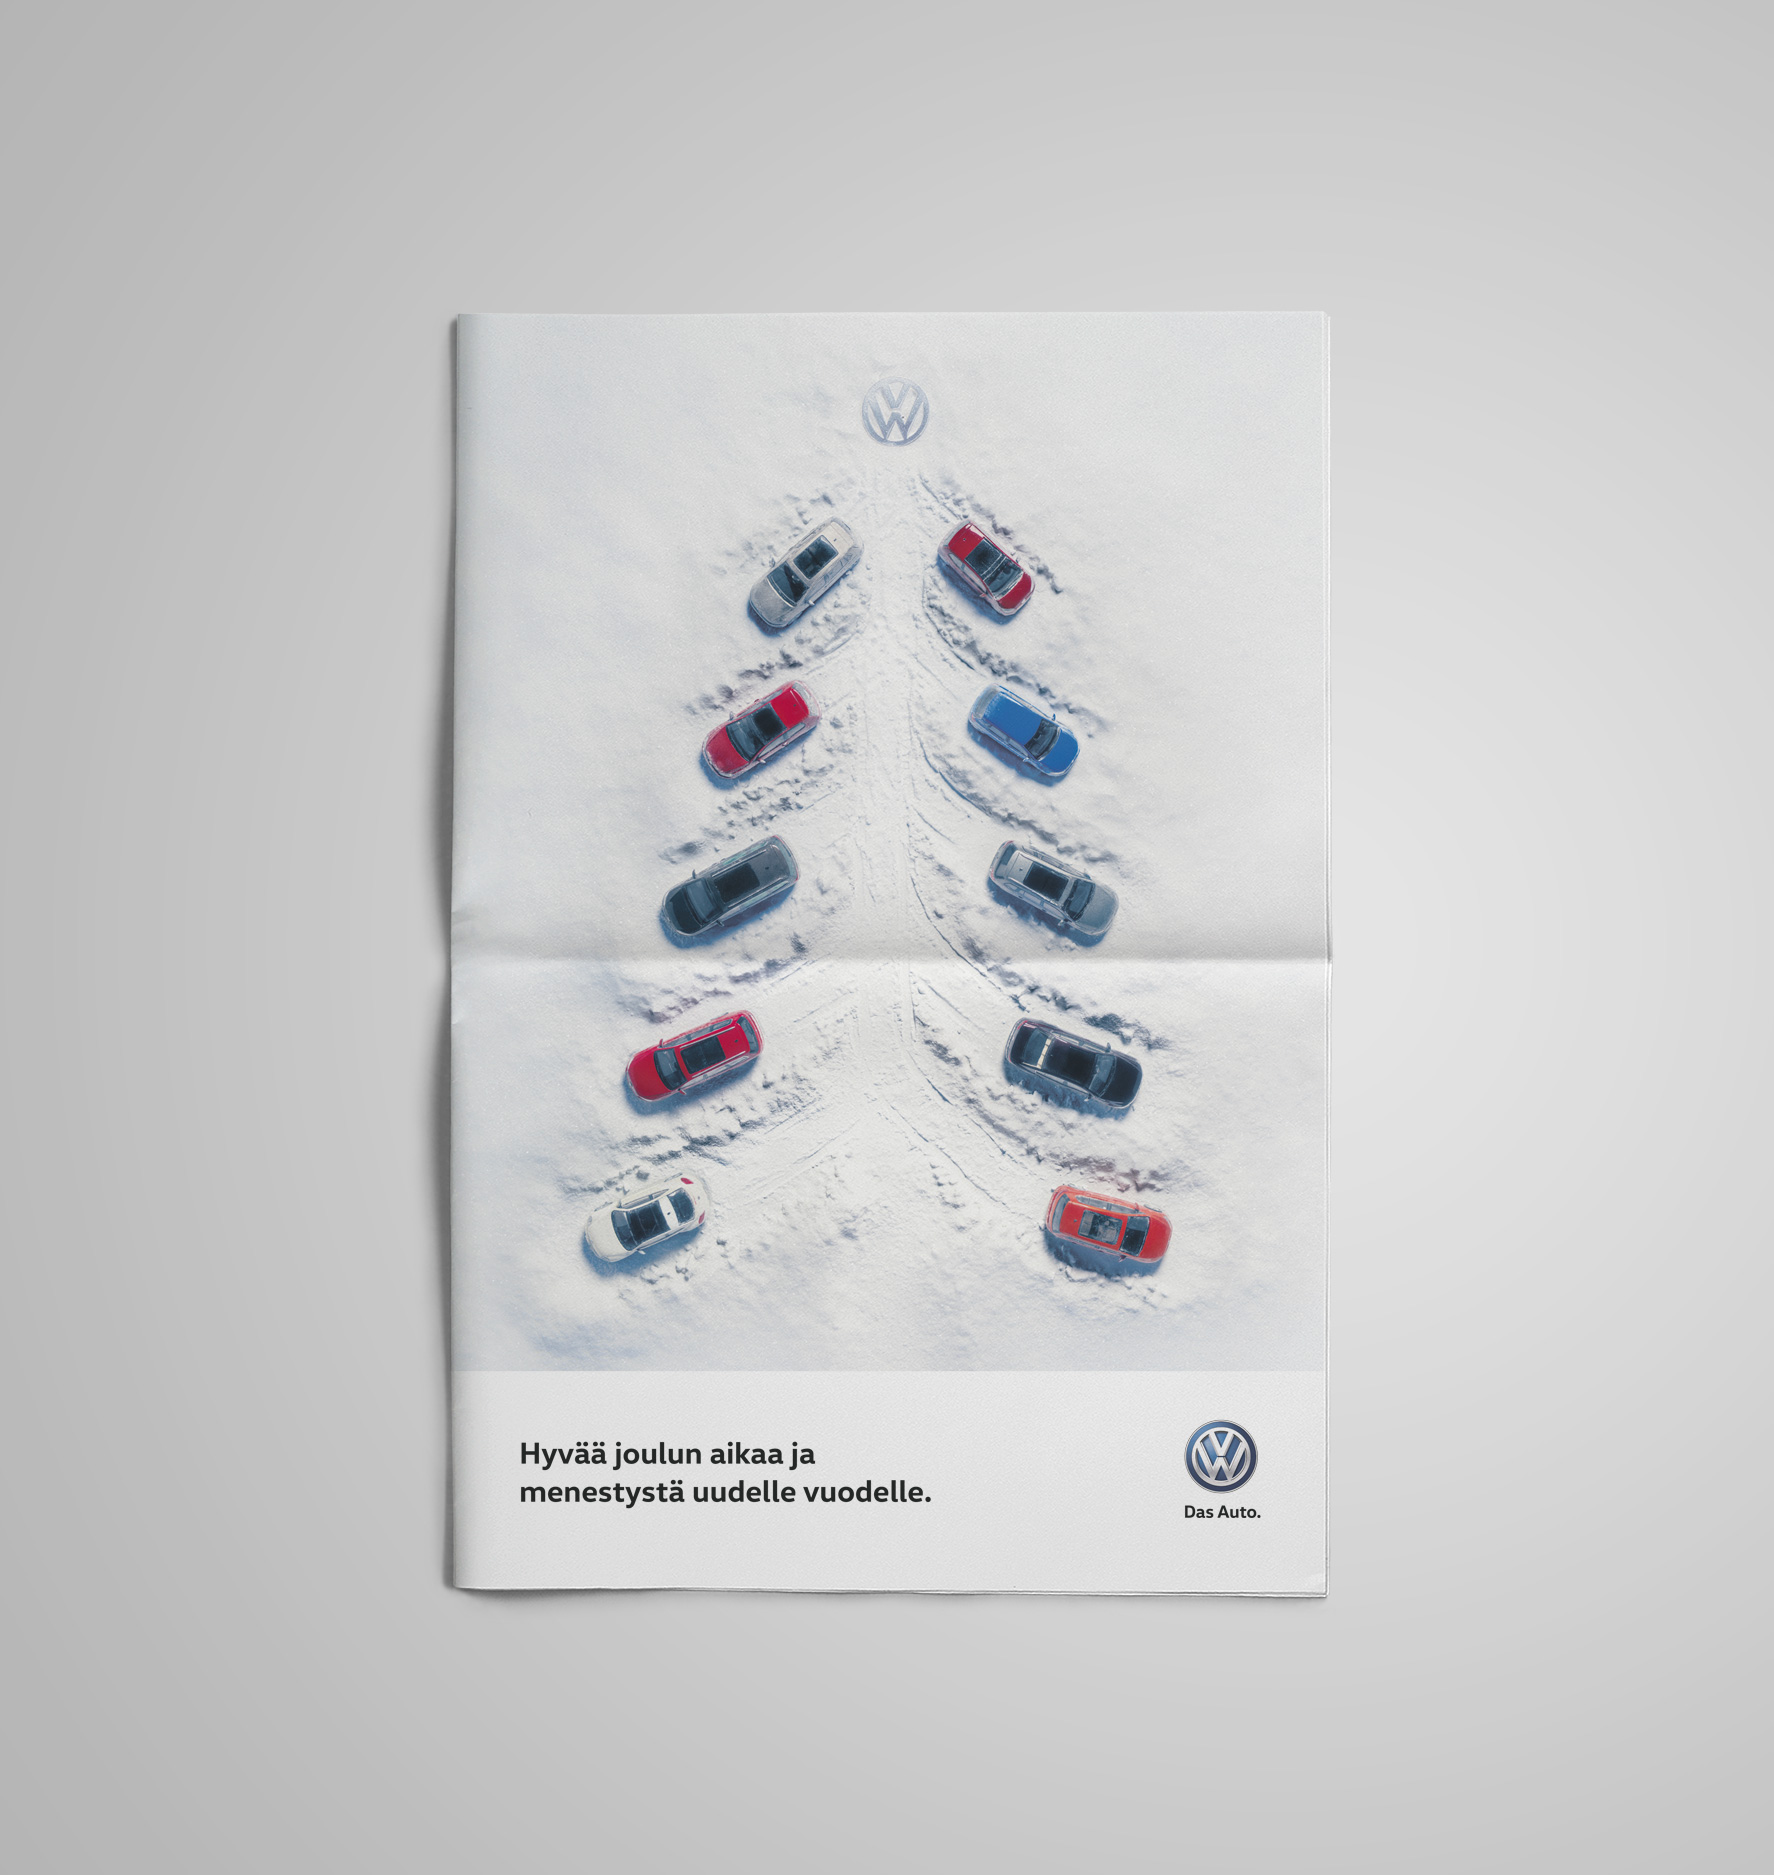 Volkswagen Christmas campaign newspaper